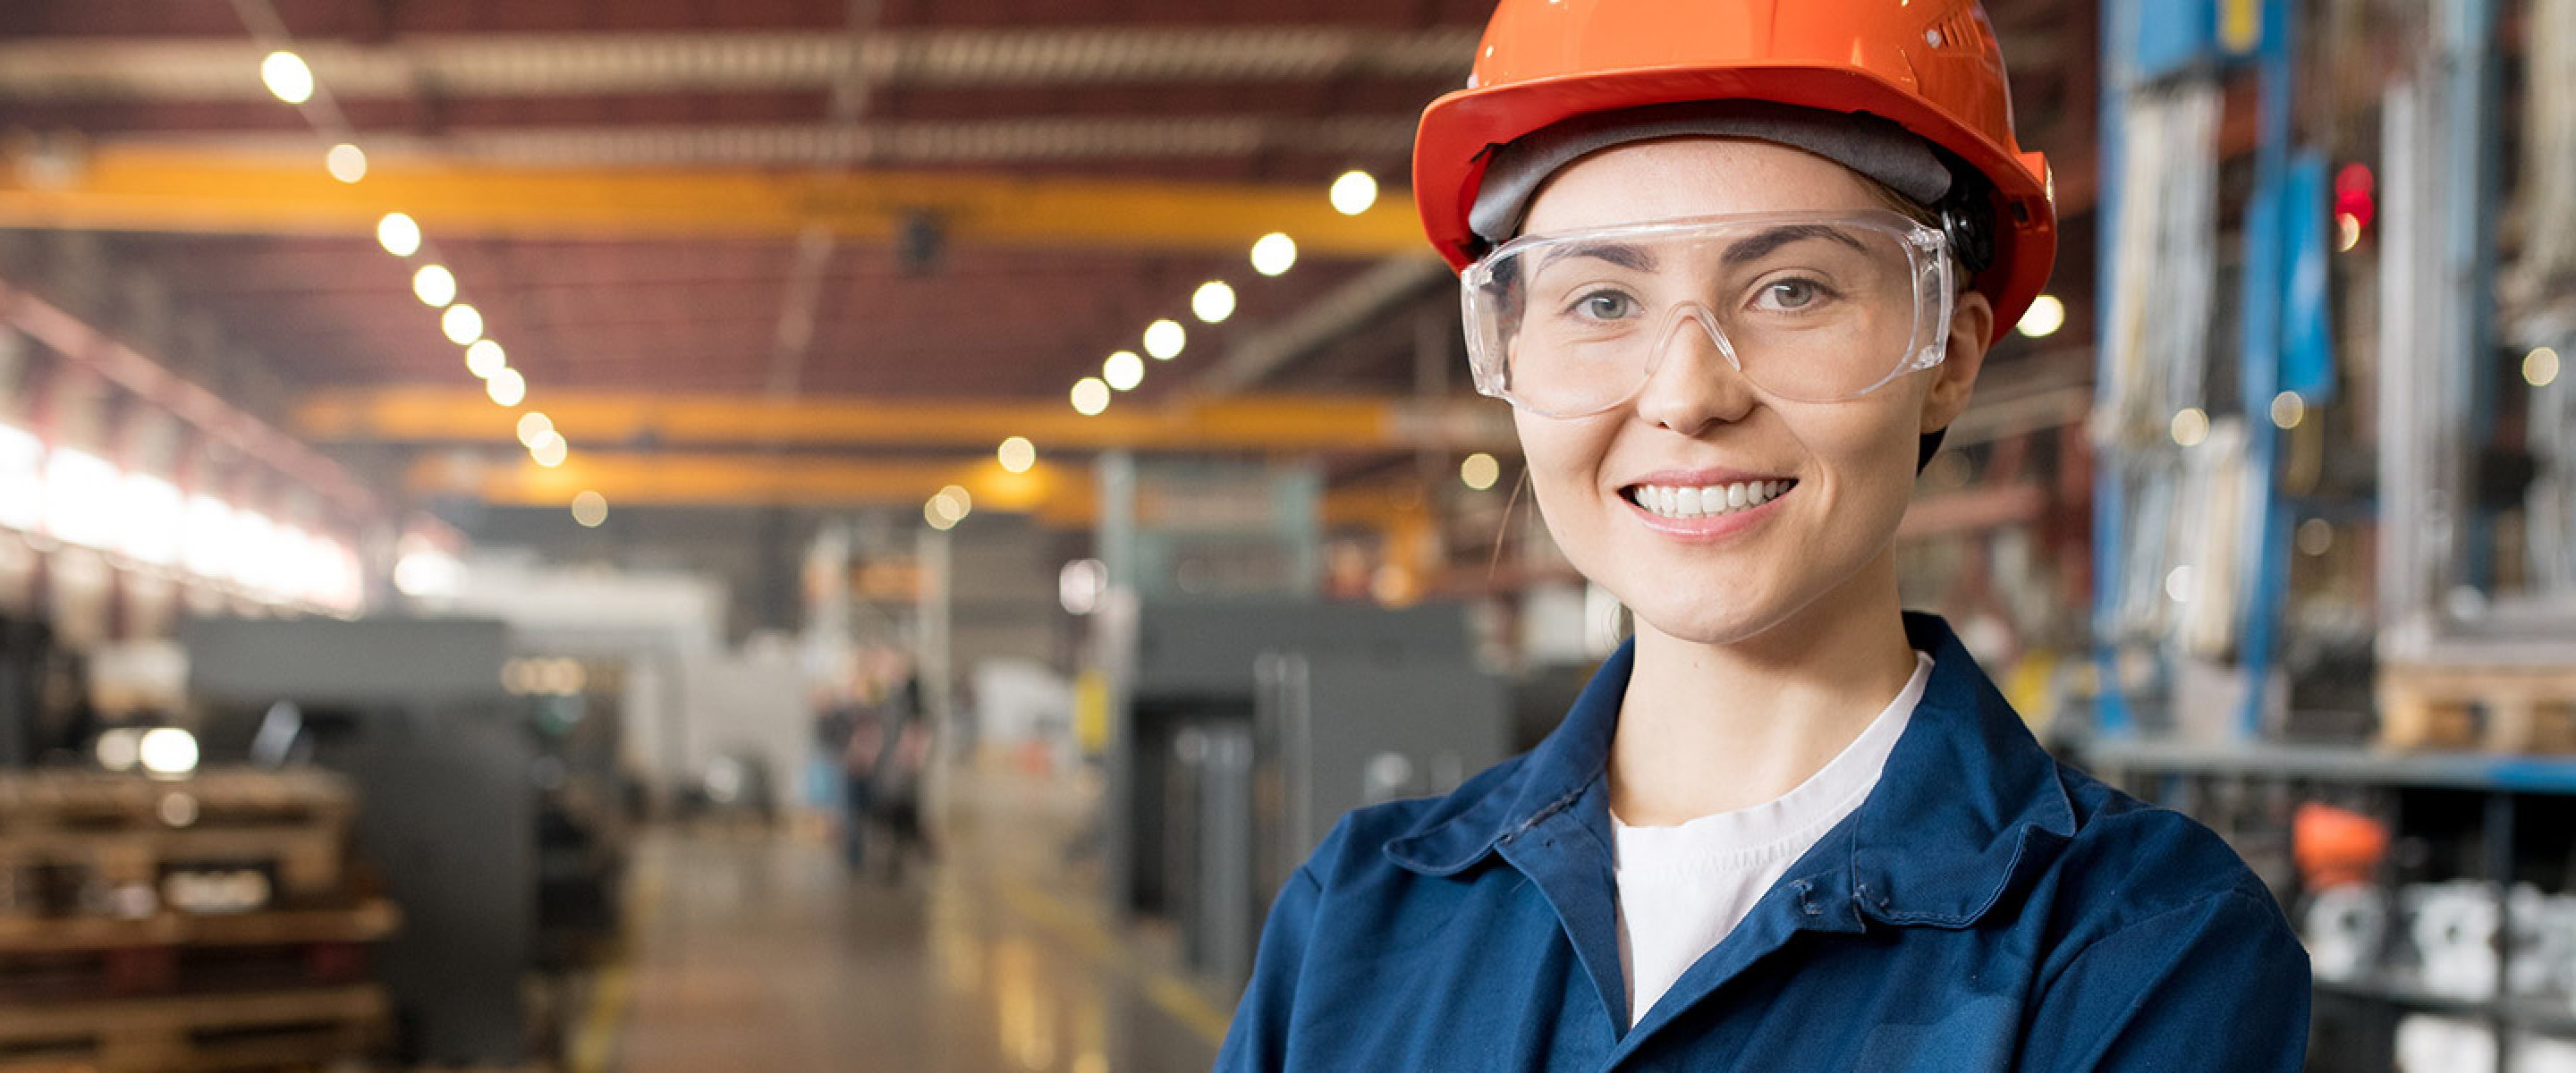 Young female worker wearing safety glasses and a hard hat smiles in a factory